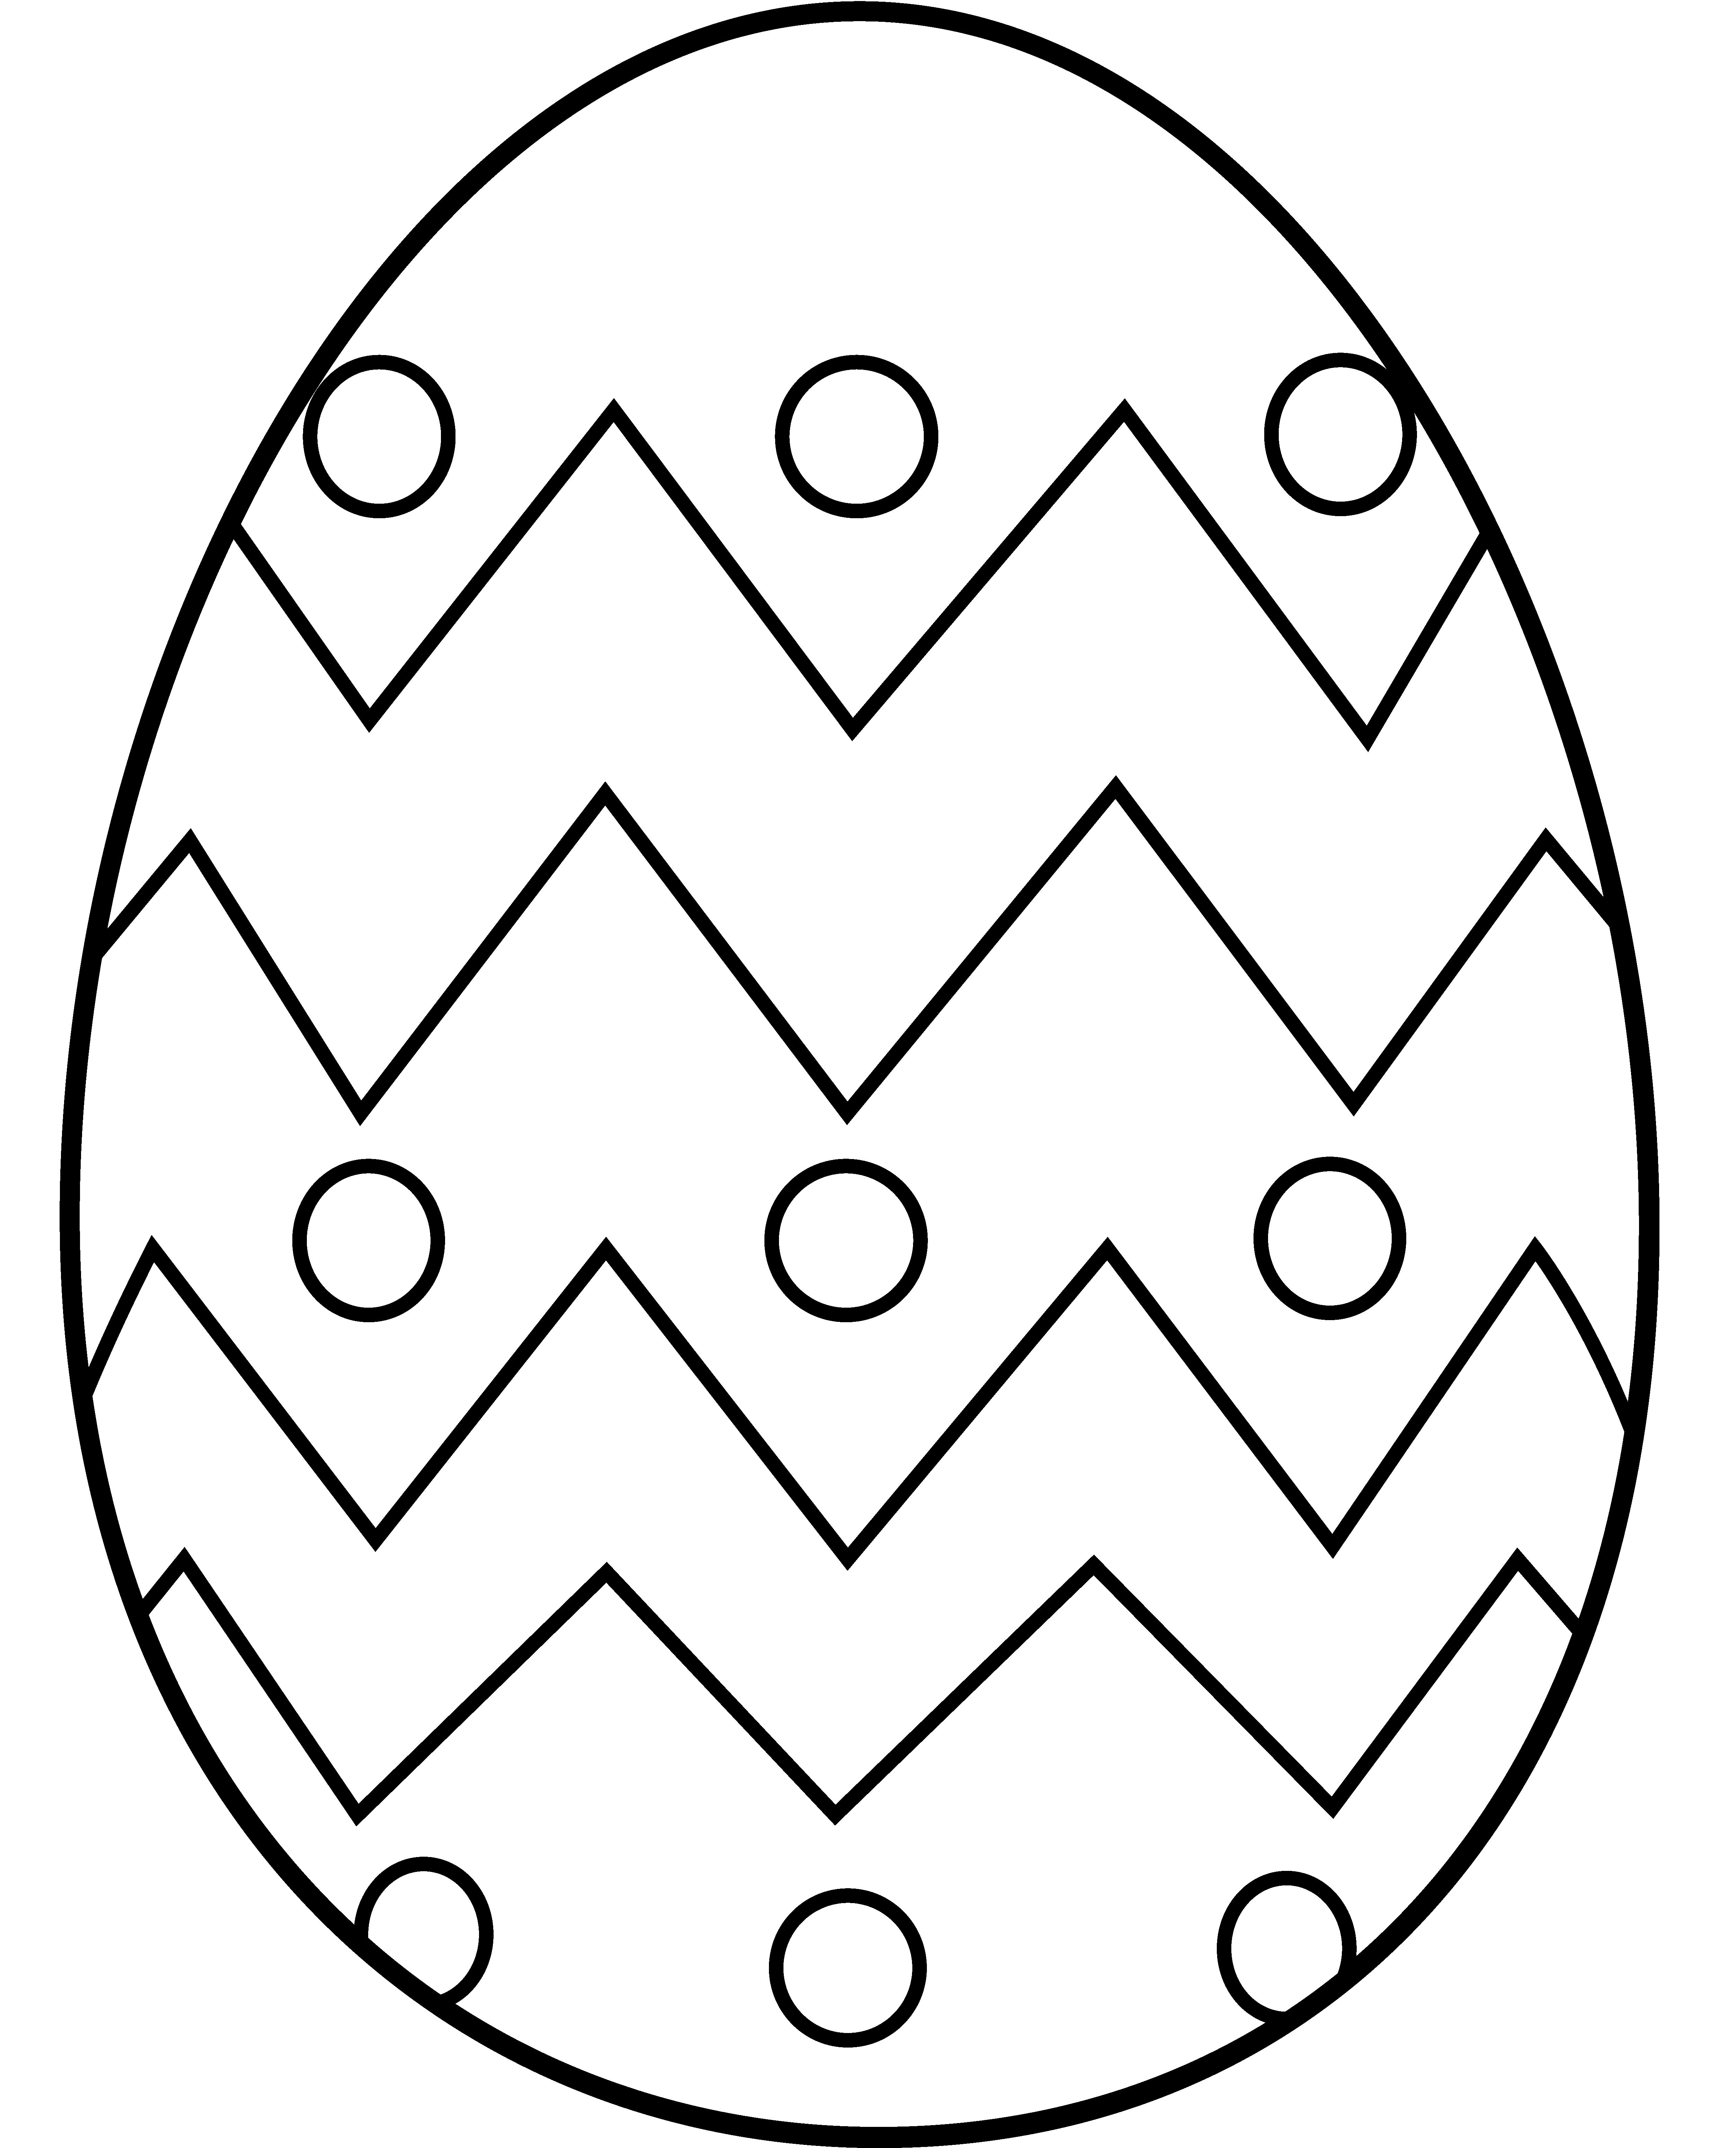 pysanky egg coloring pages pysanky eggs coloring page coloring pages pages egg coloring pysanky